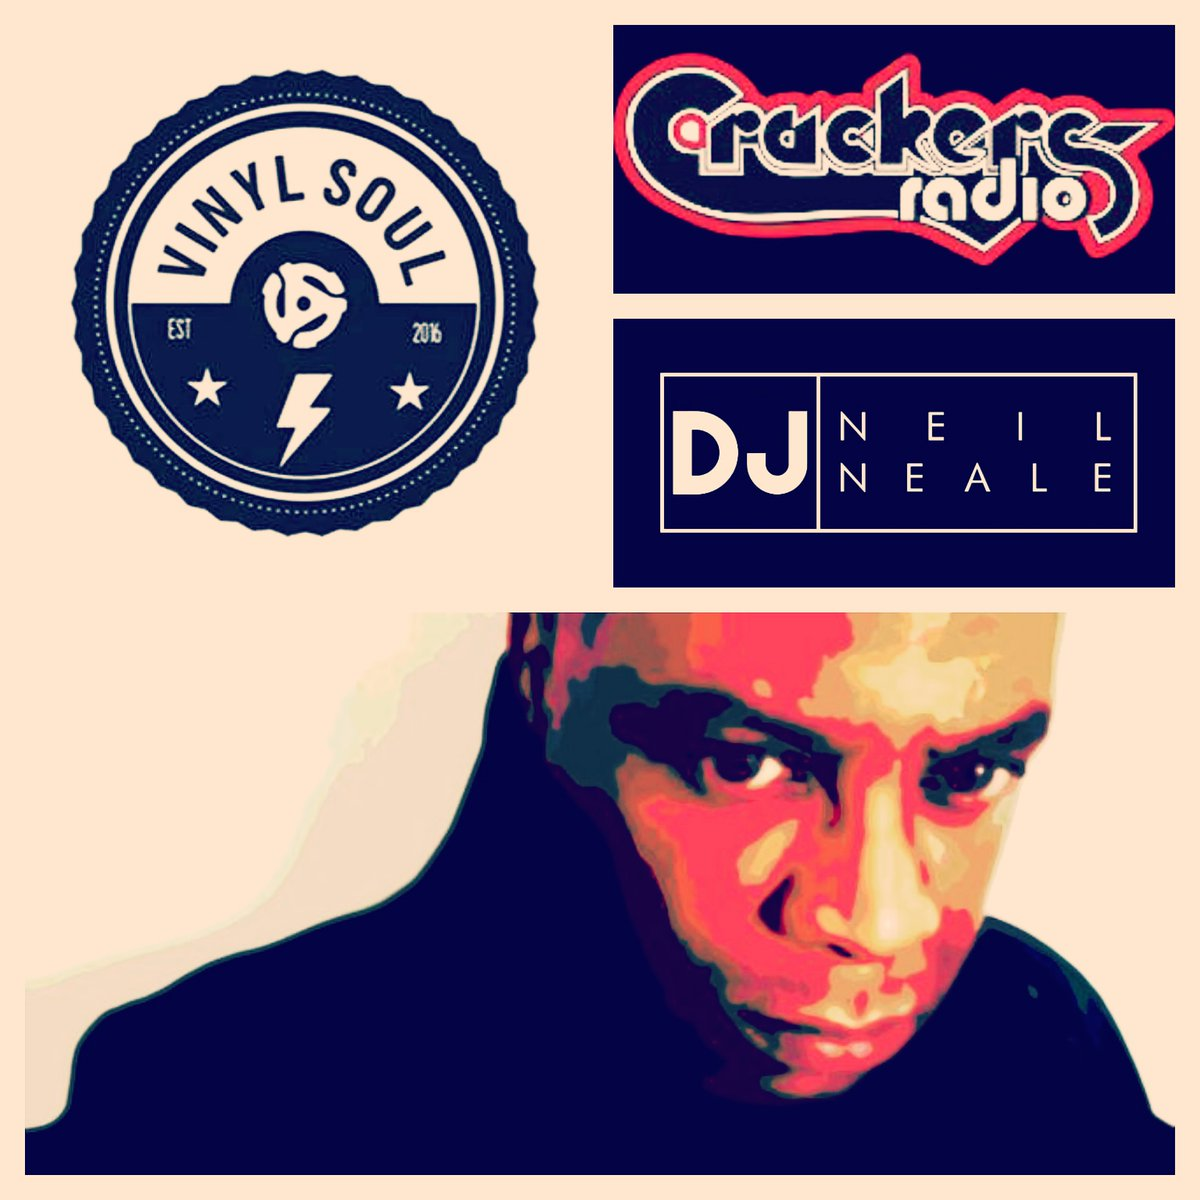 The BIG News SuperJam Extra.  Live on Crackers Radio today, hours 4pm to 7pm GMT hosted by DJ Neil Neale  Join me for the best in soul, funk, and boogie #soulmusiclovers #funk #funkalbums #soulboys #britfunk #londonfunk #mondaymusic #blackmusicmatters #blackmusic #funkradiopic.twitter.com/BacHKixlFA